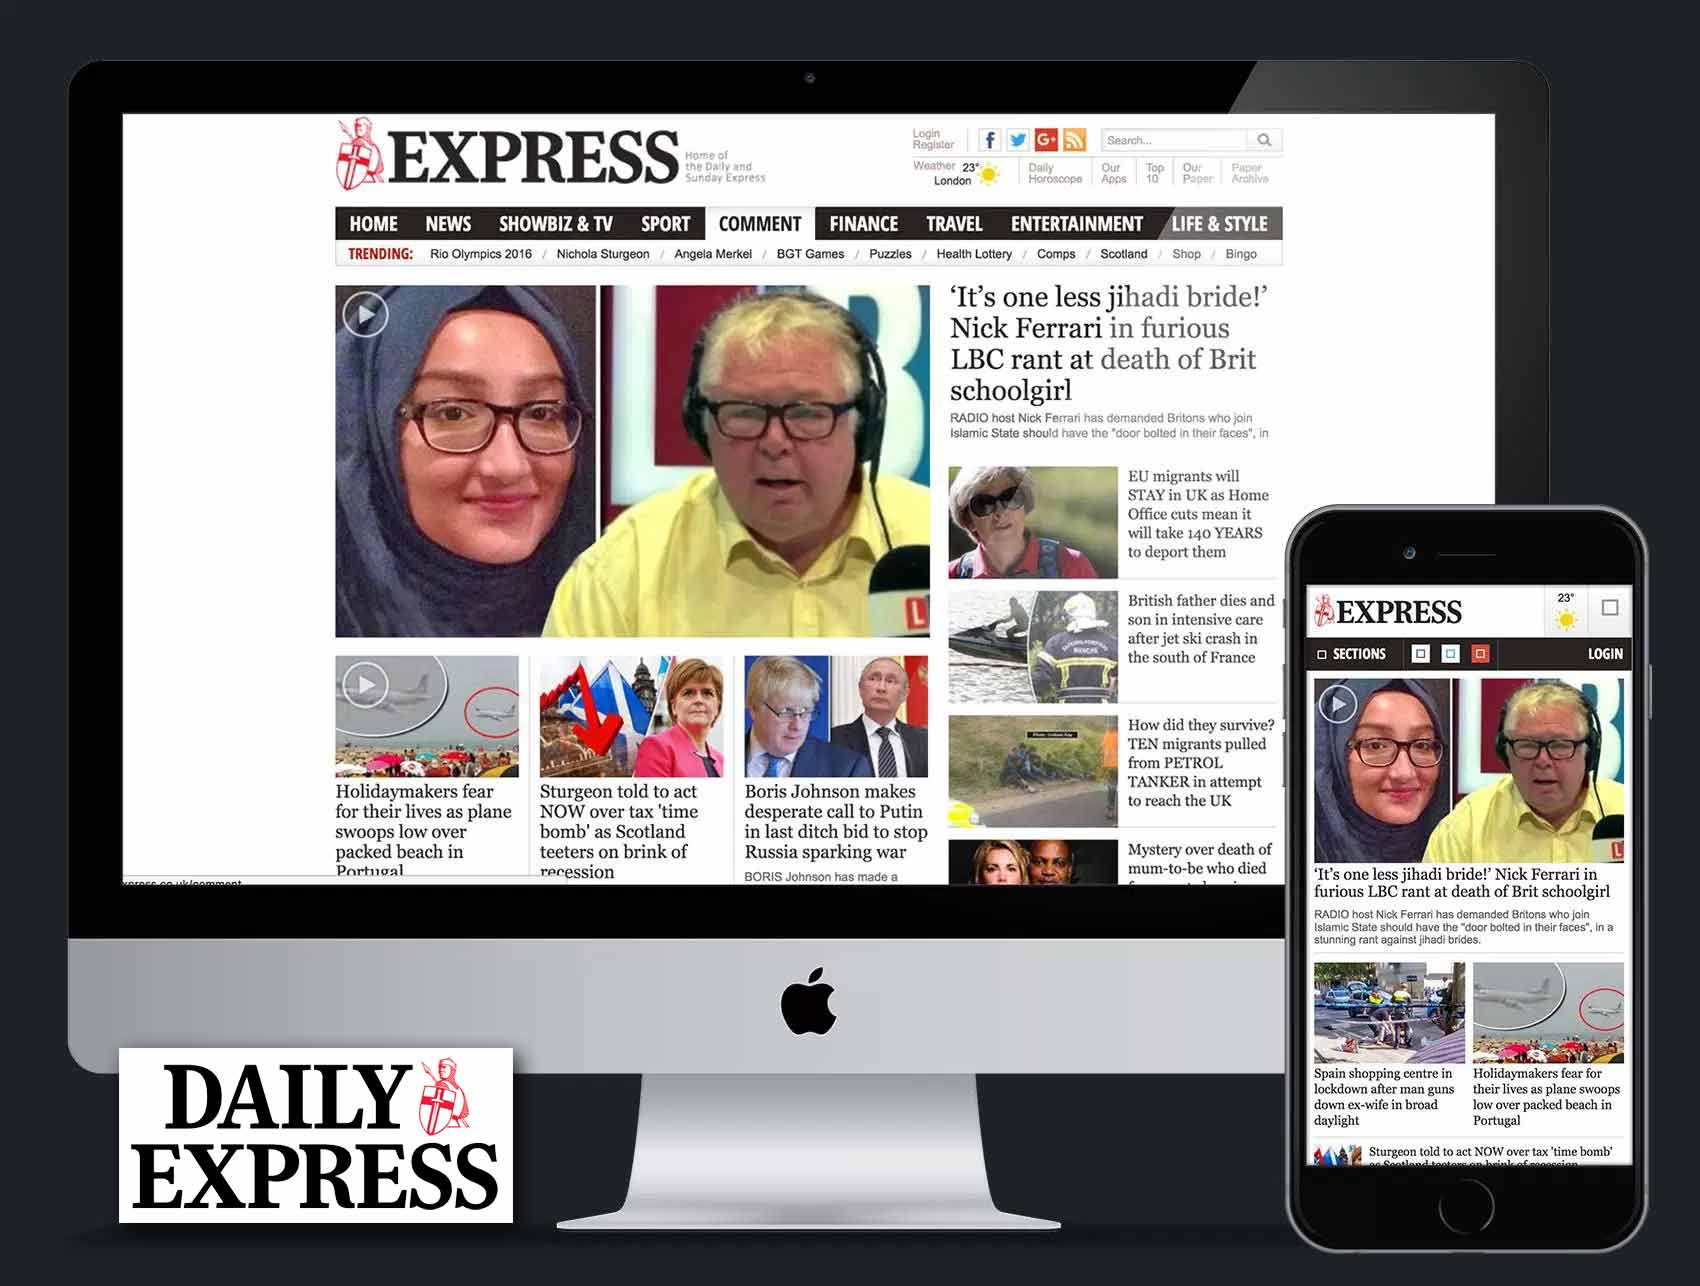 Daily Express: Mobile-First Website Redesign